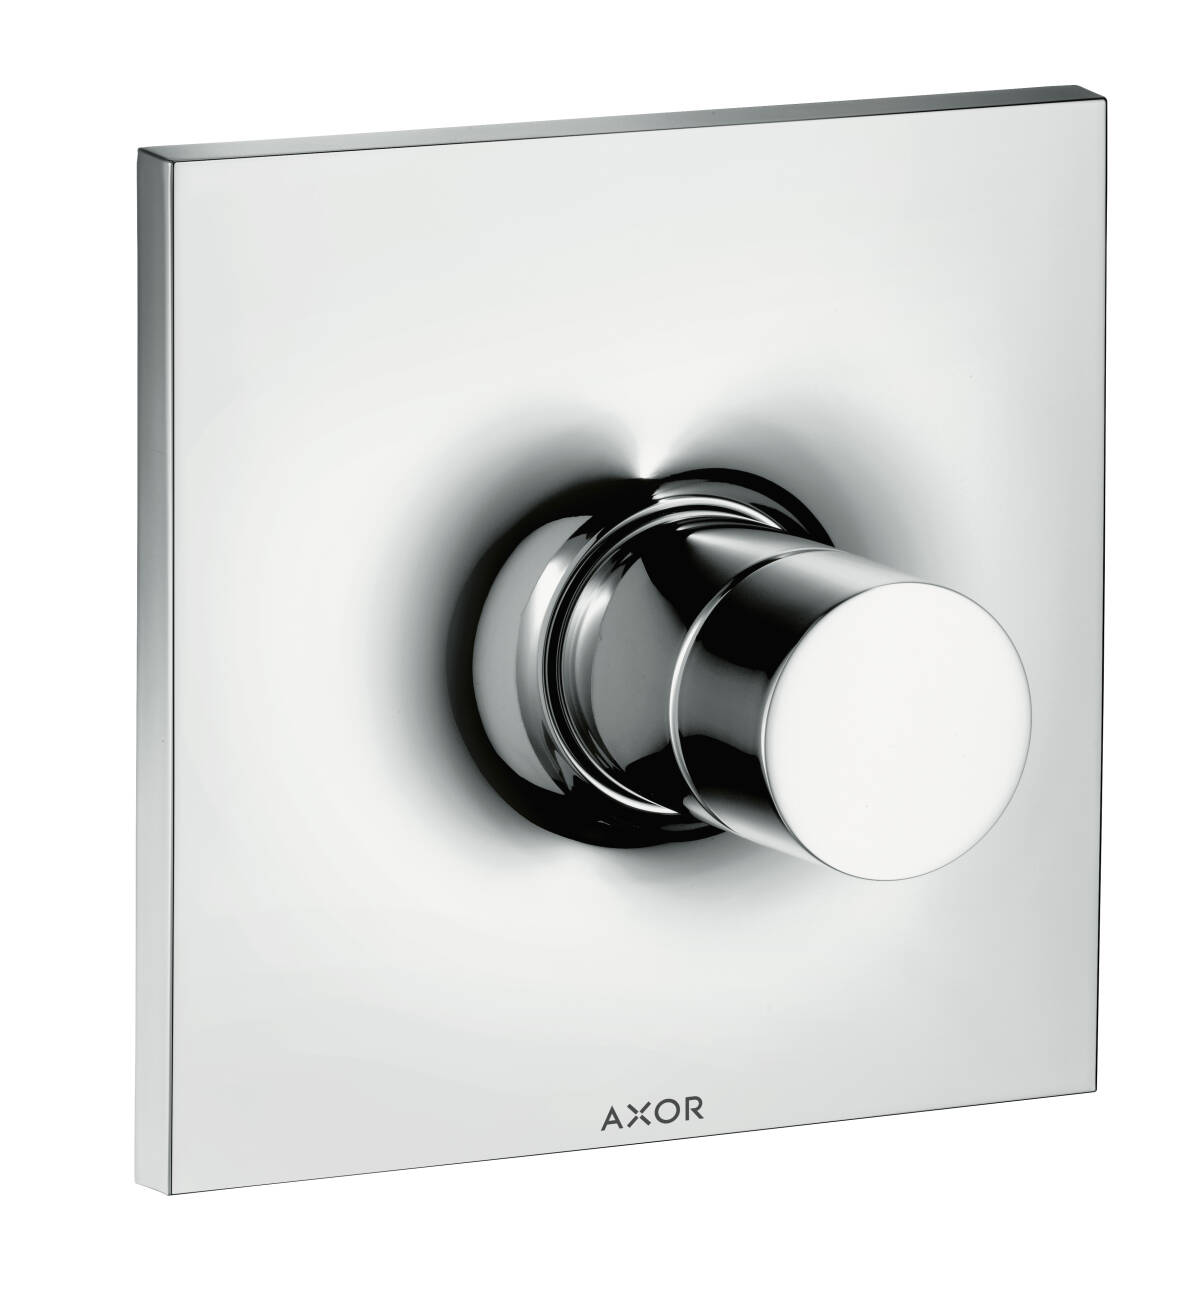 Single lever shower mixer for concealed installation, Chrome, 18655000